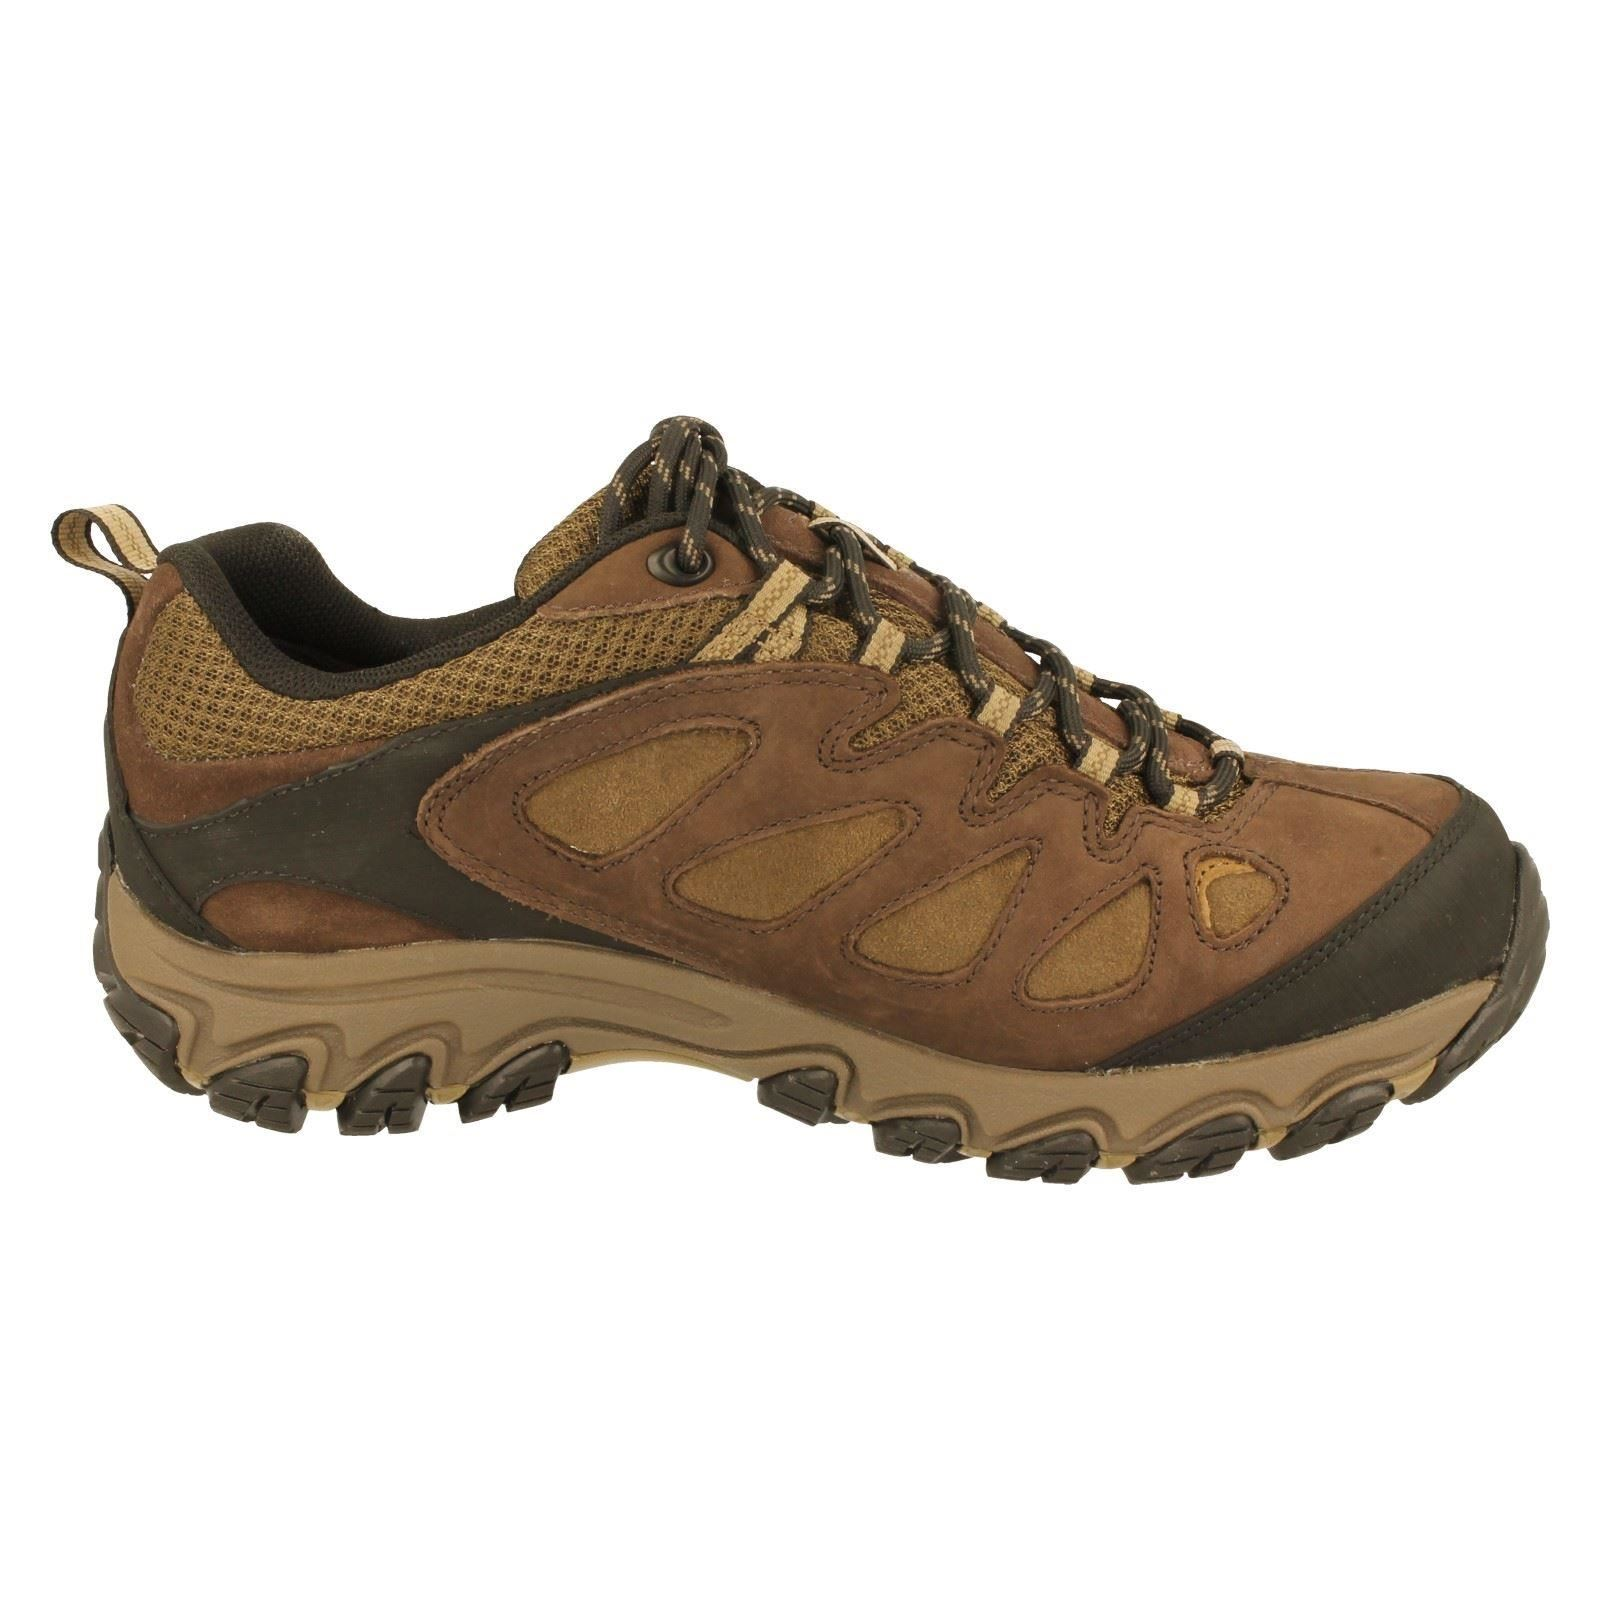 Mens Mens Mens Merrell Walking Shoes the Style - Pulsate Waterproof 366495